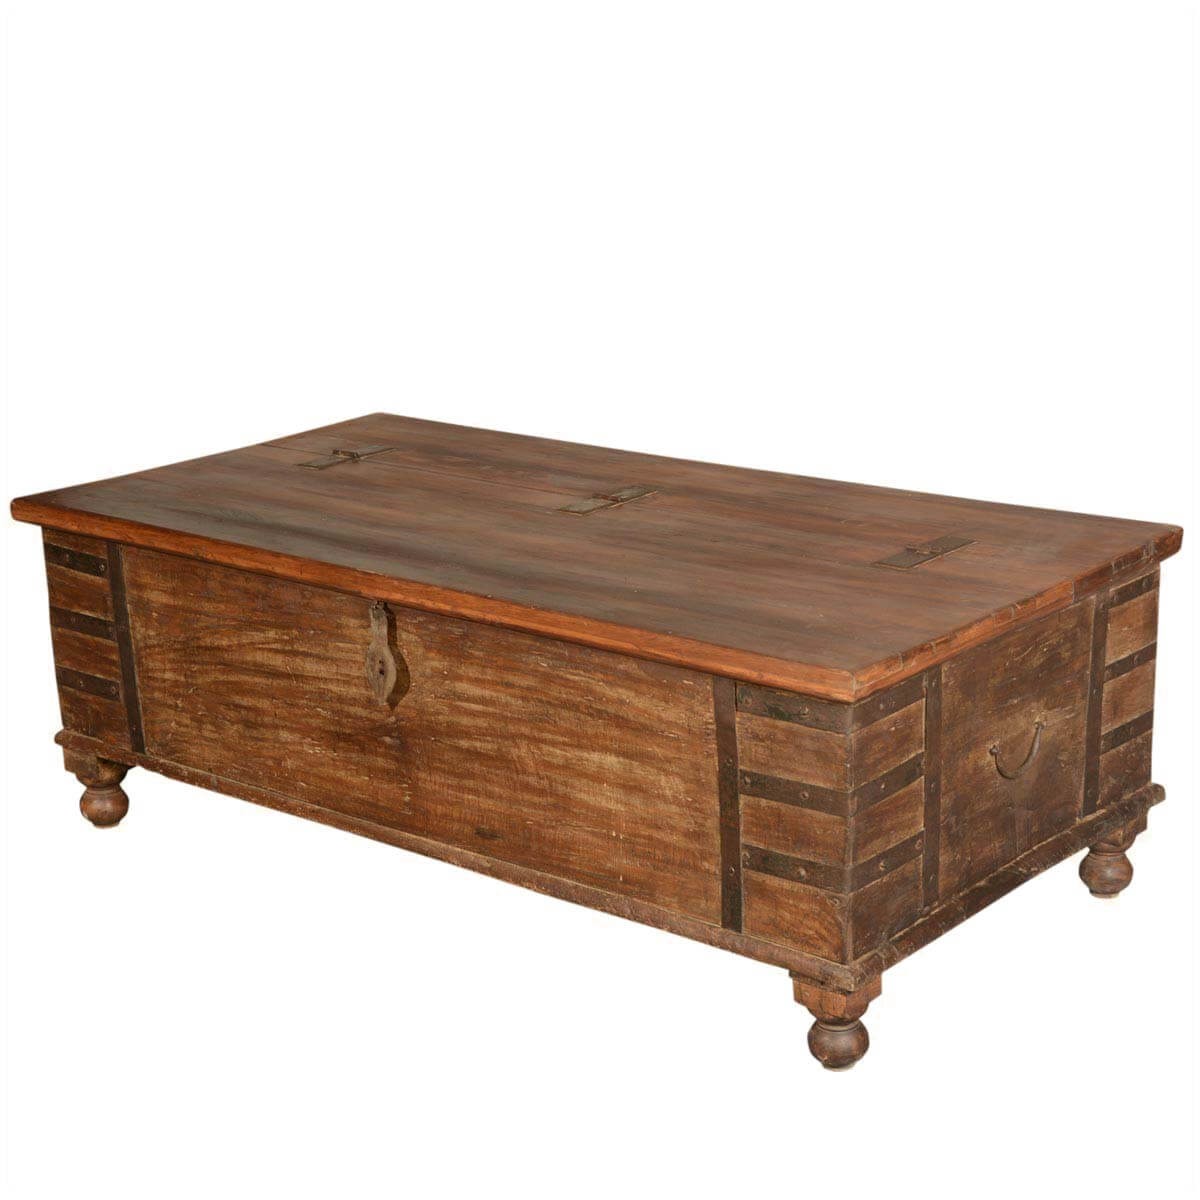 Rustic reclaimed wood standing coffee table chest Recycled wood coffee table